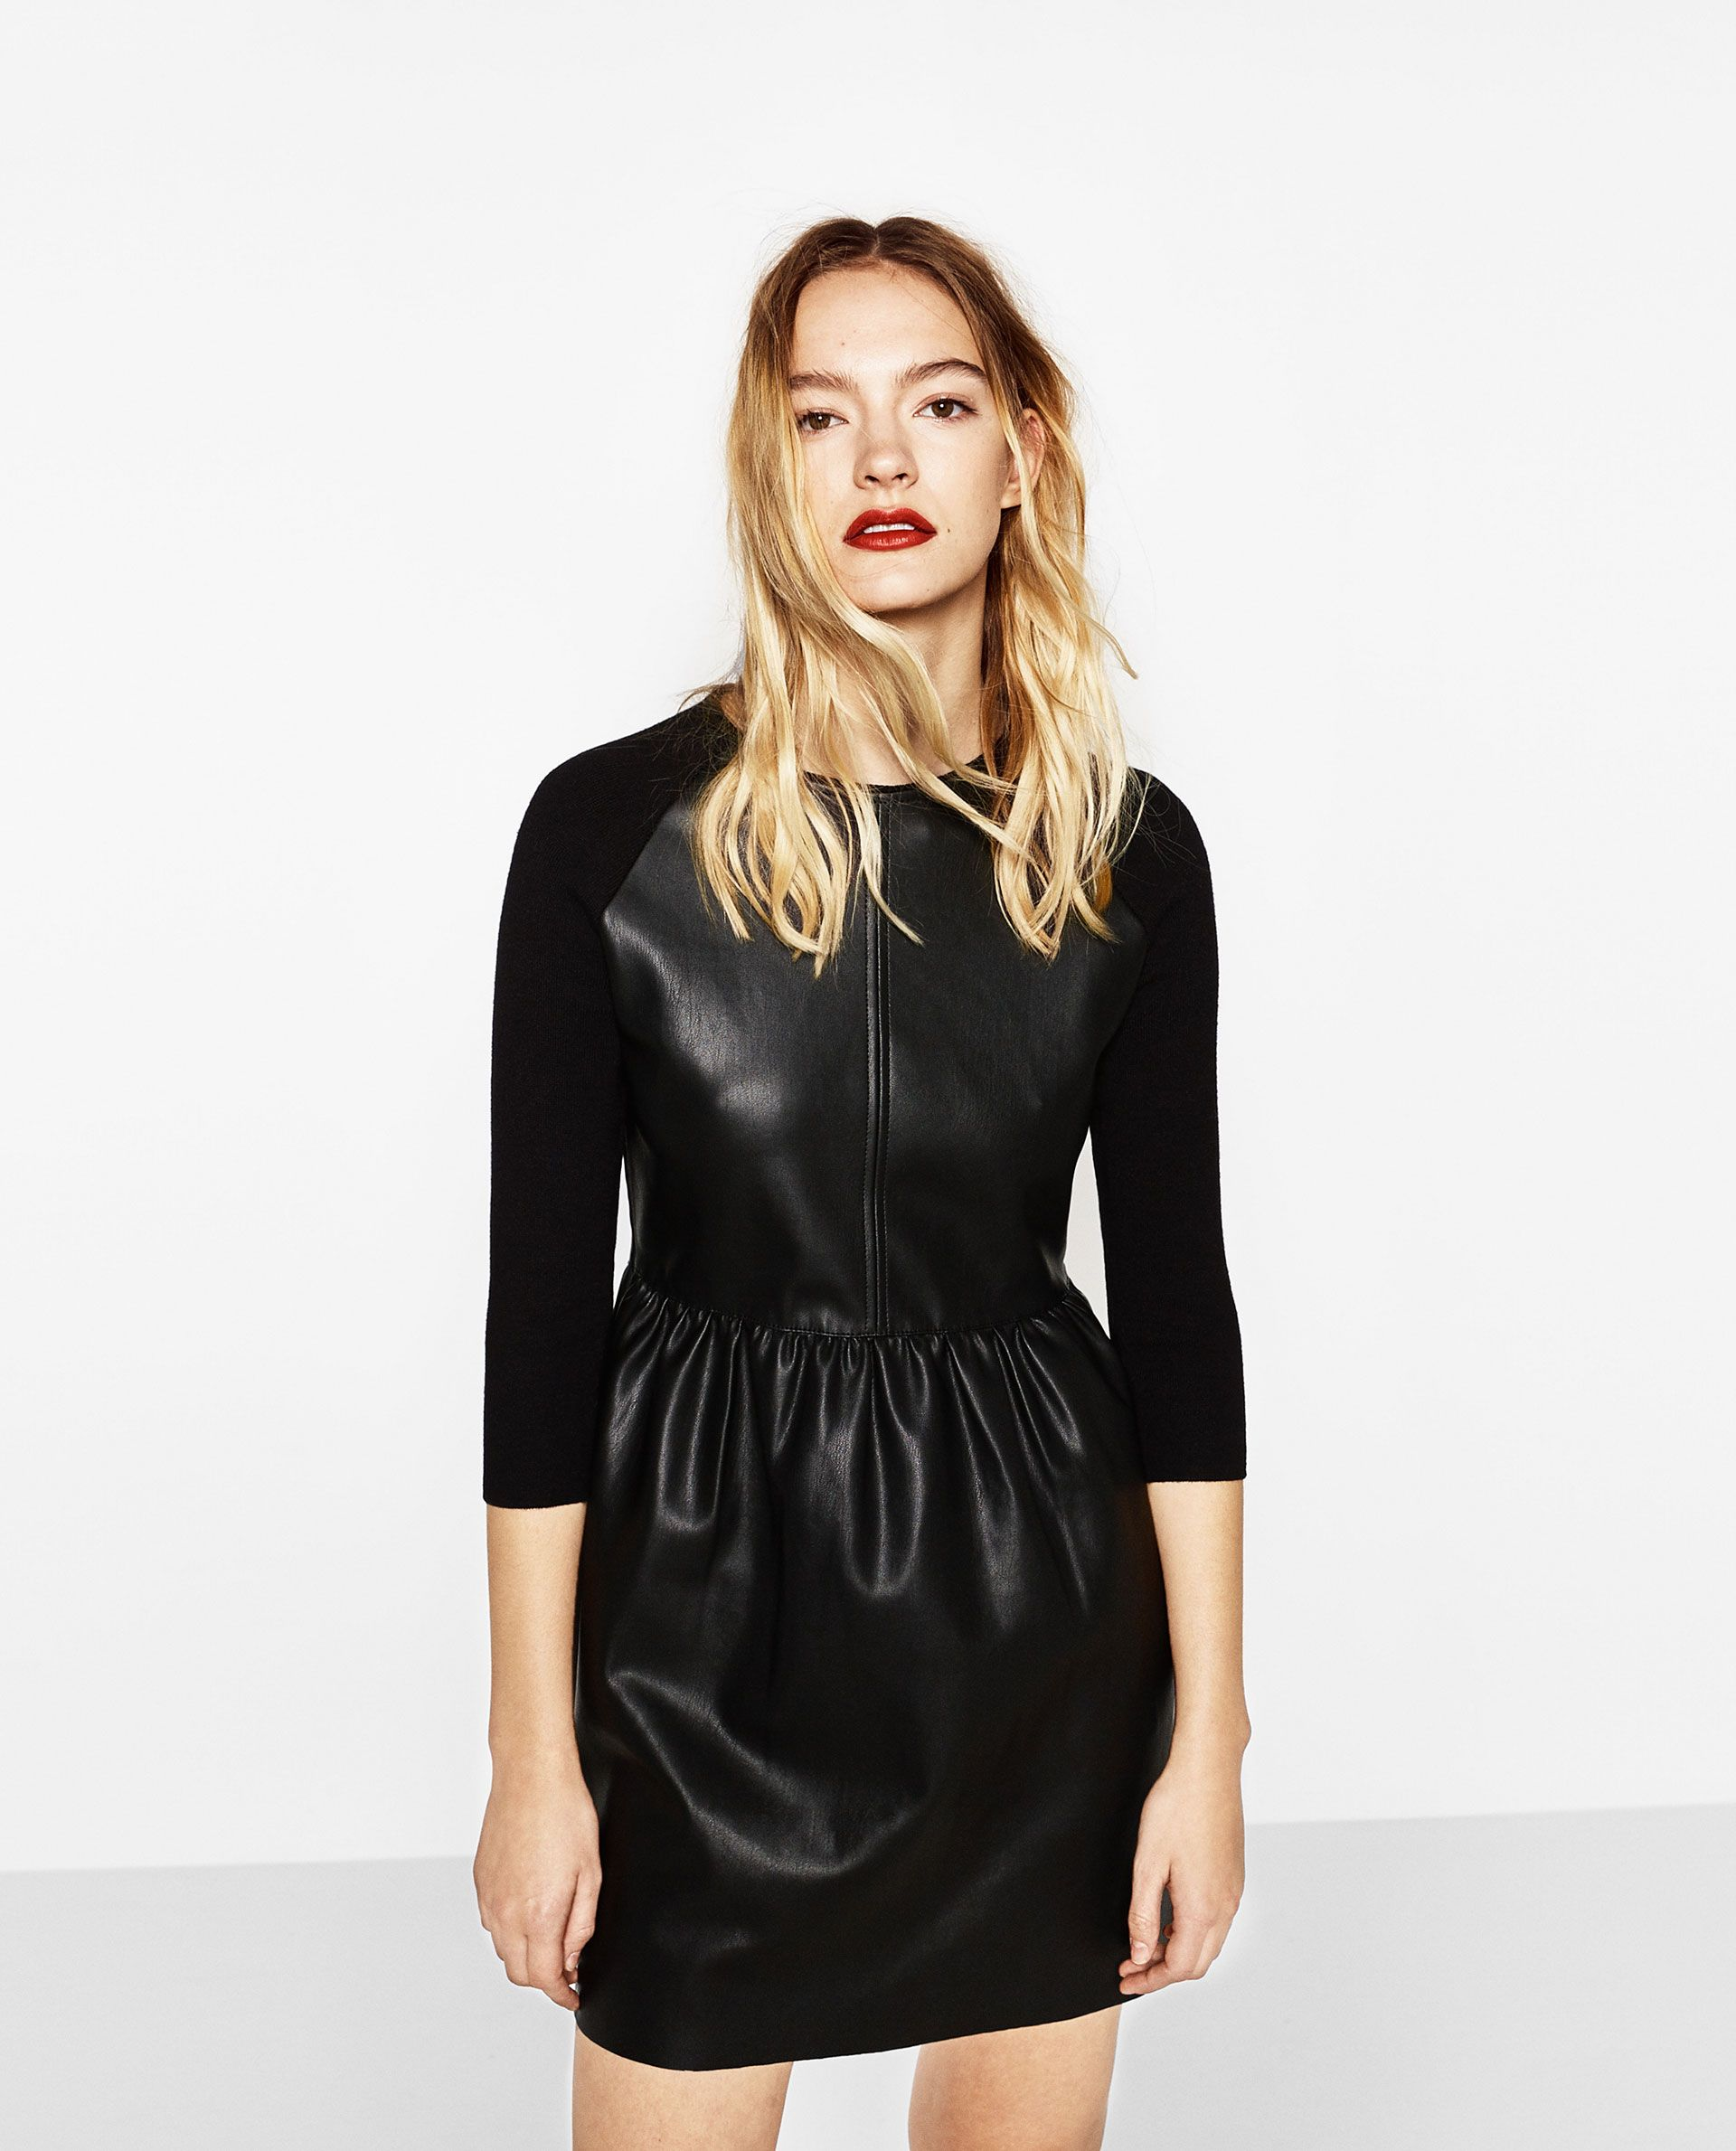 Pin by clara mari on look pinterest leather dresses leather and